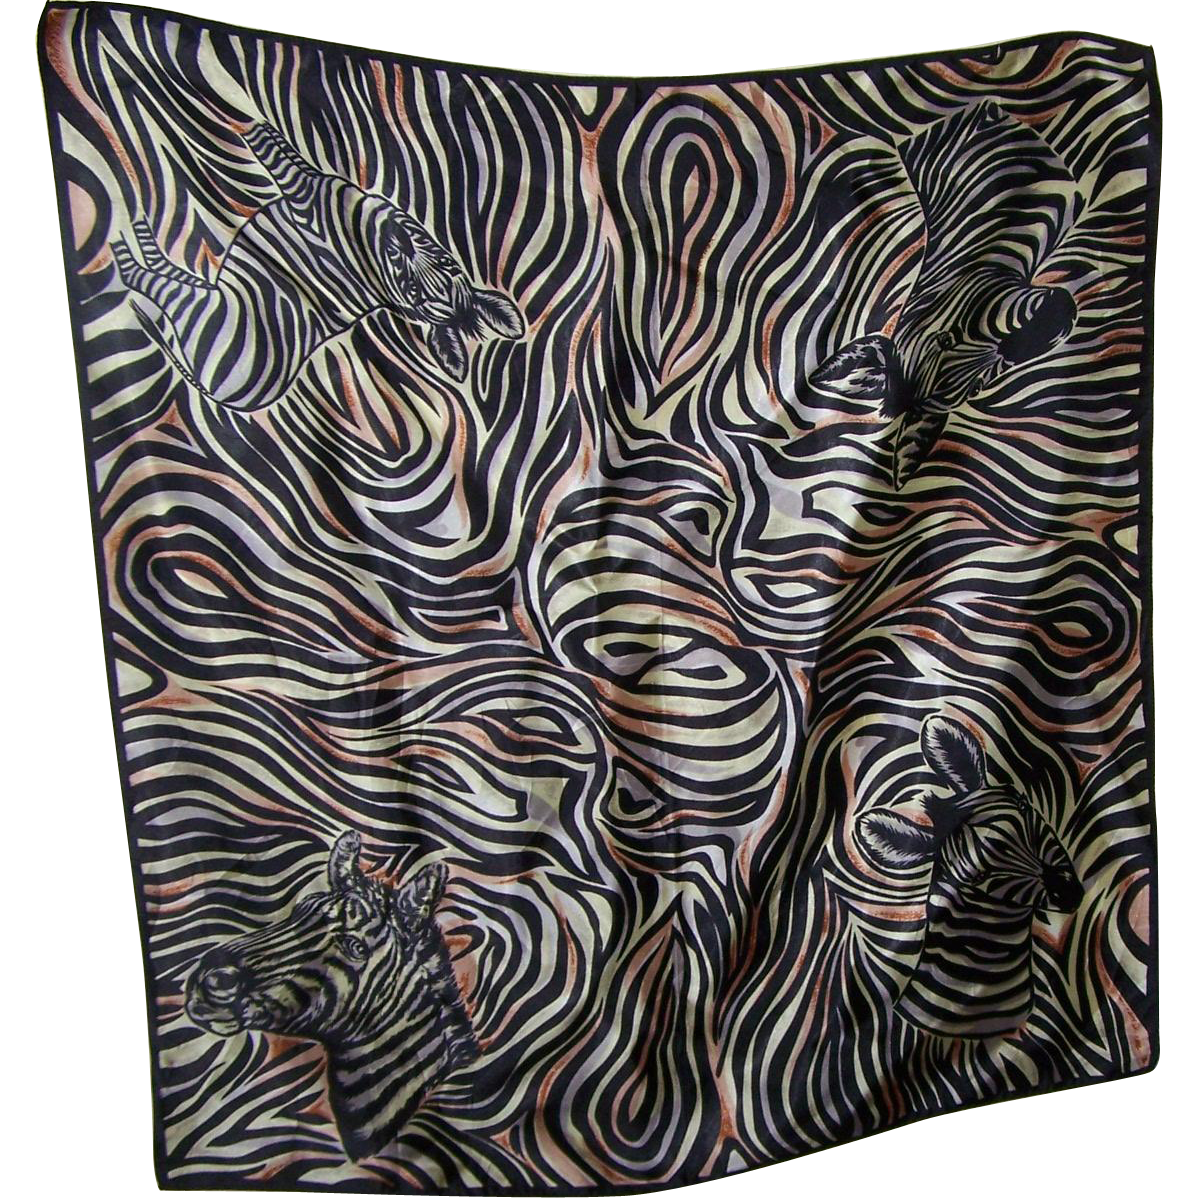 What A Great Gently Used Animal Print Zebra Fashion Scarf Wearable OP ART